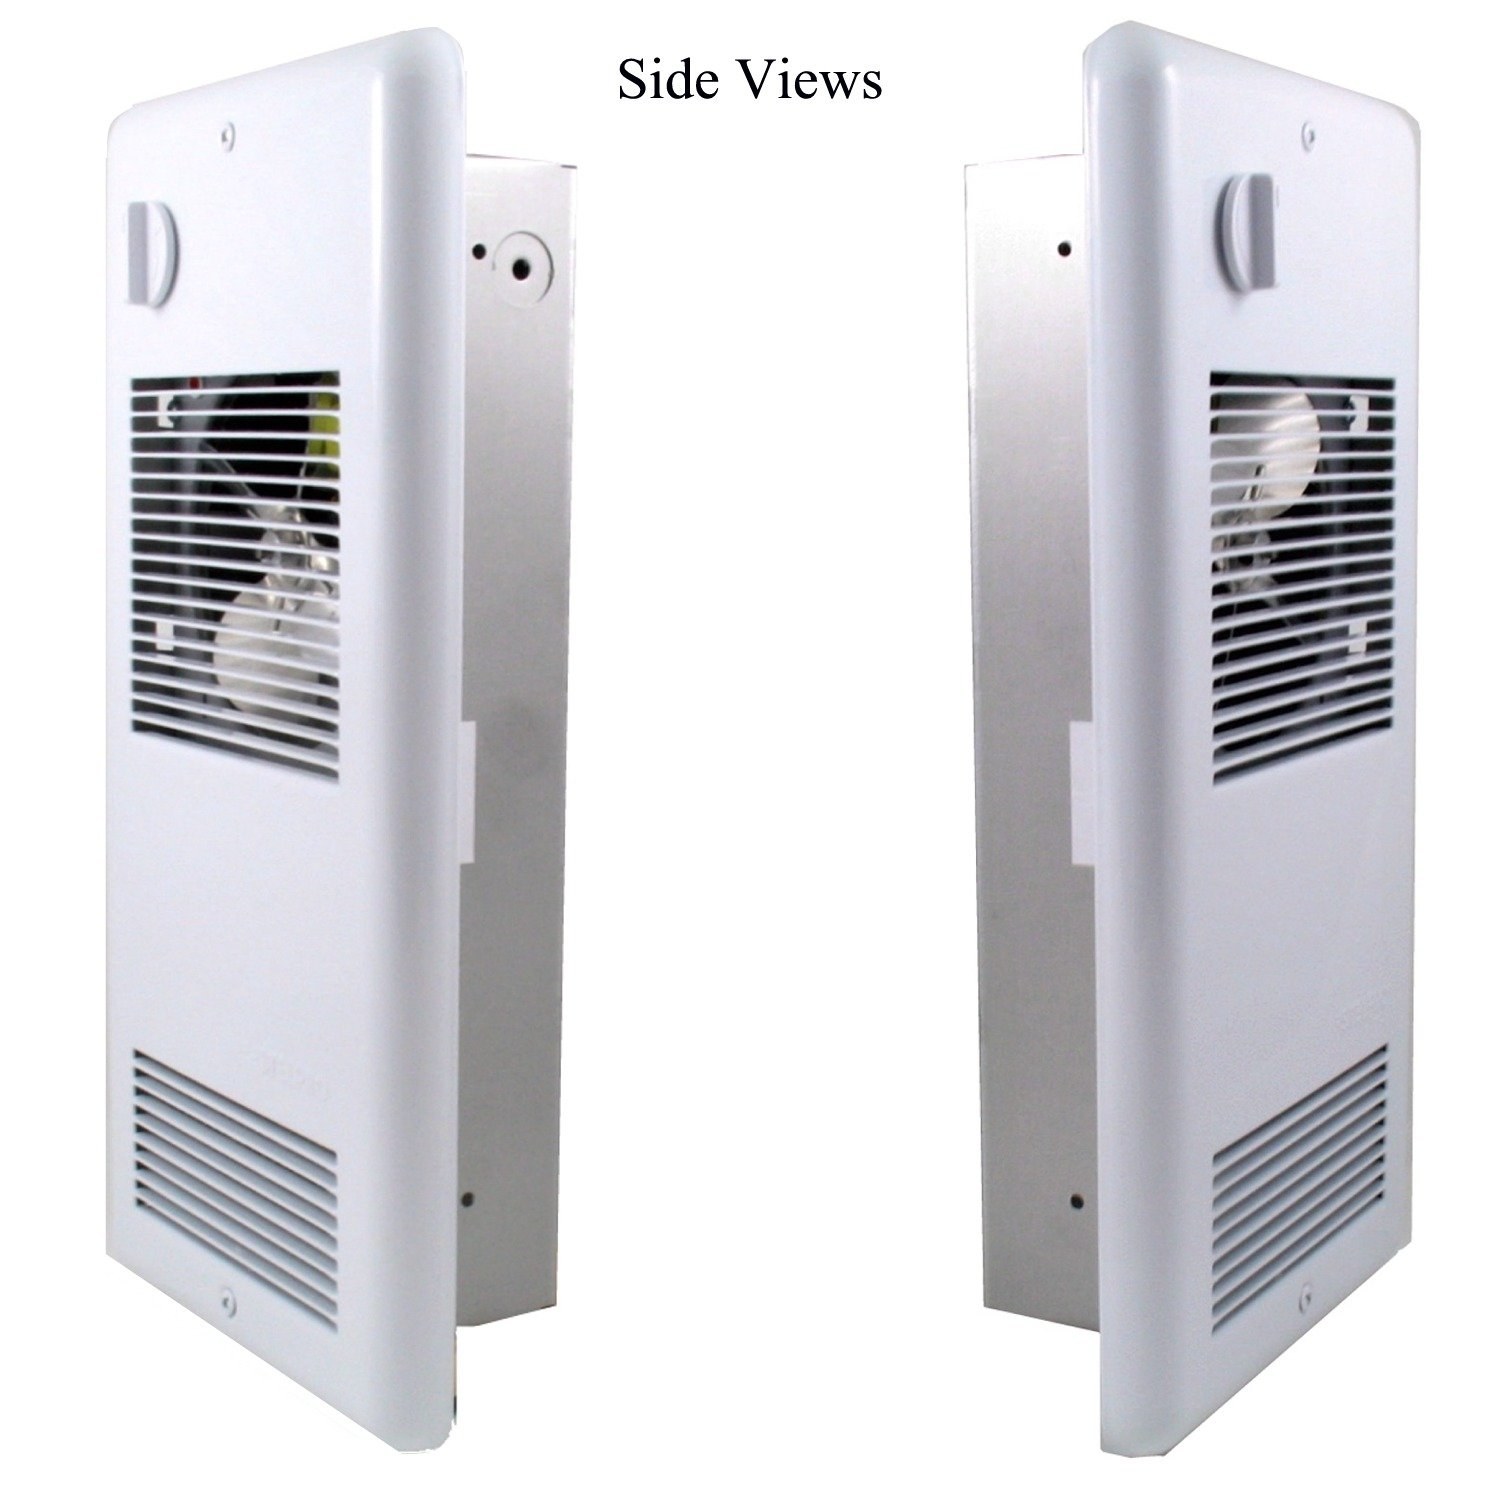 High Quality Bathroom Wall Heater & Free Thermometer Bundle: Heats up to 150 sq ft ultra-quiet electric wall mounted heater. Safe & reliable heating, 120 volts puts out 1500 watts, energy efficient heater with a built-in thermostat